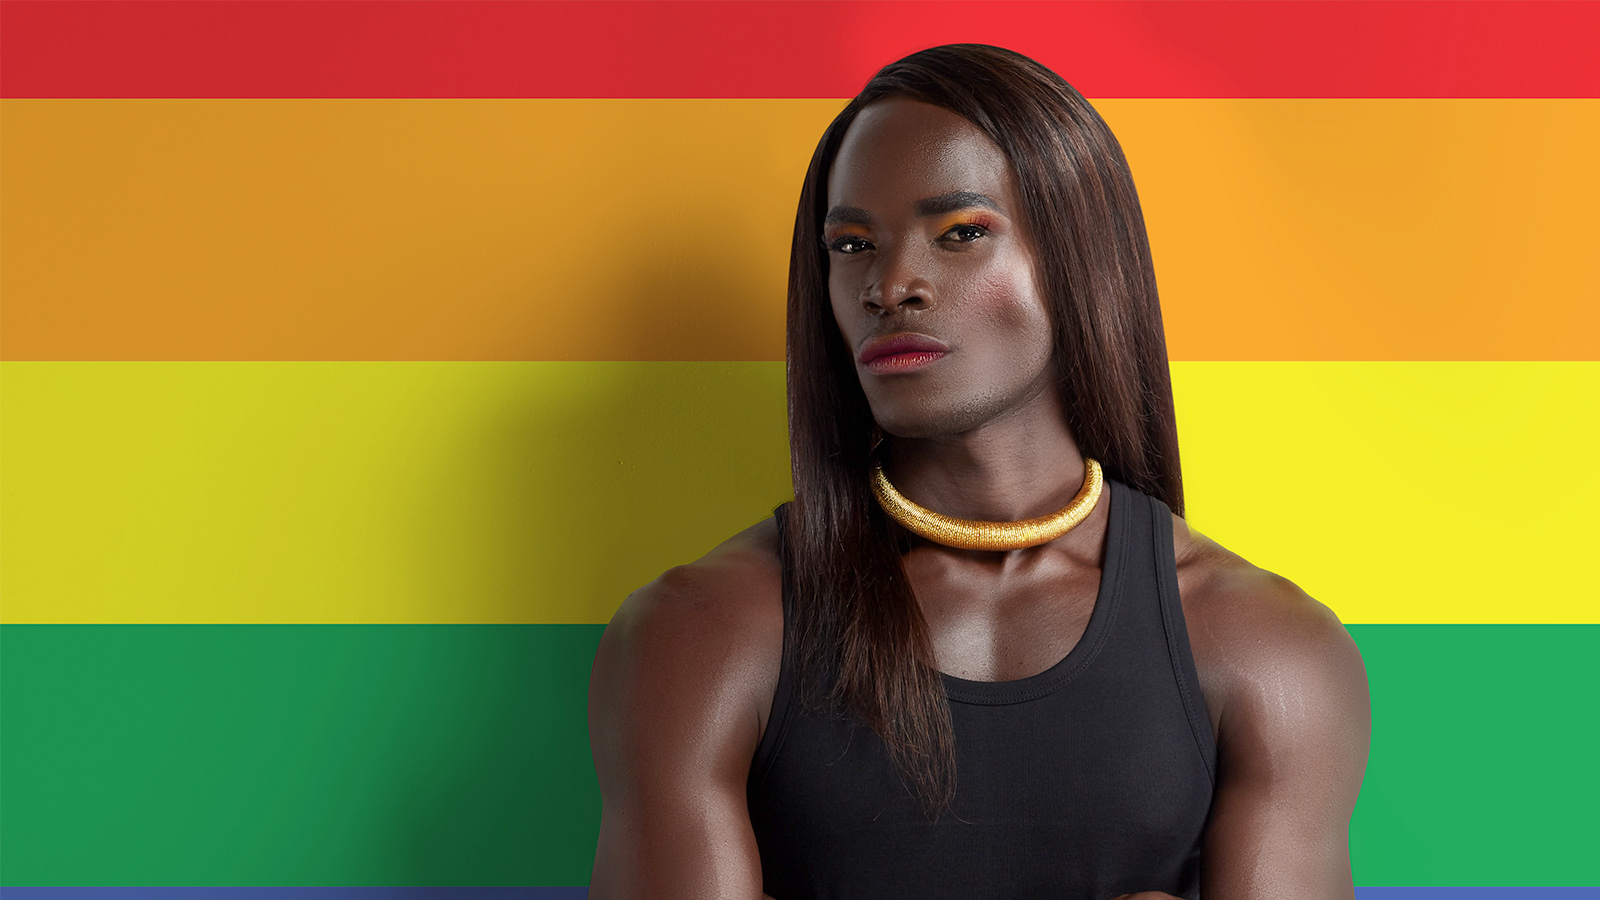 Safe spaces for free expression through Arts for LGBTI persons in Kenya